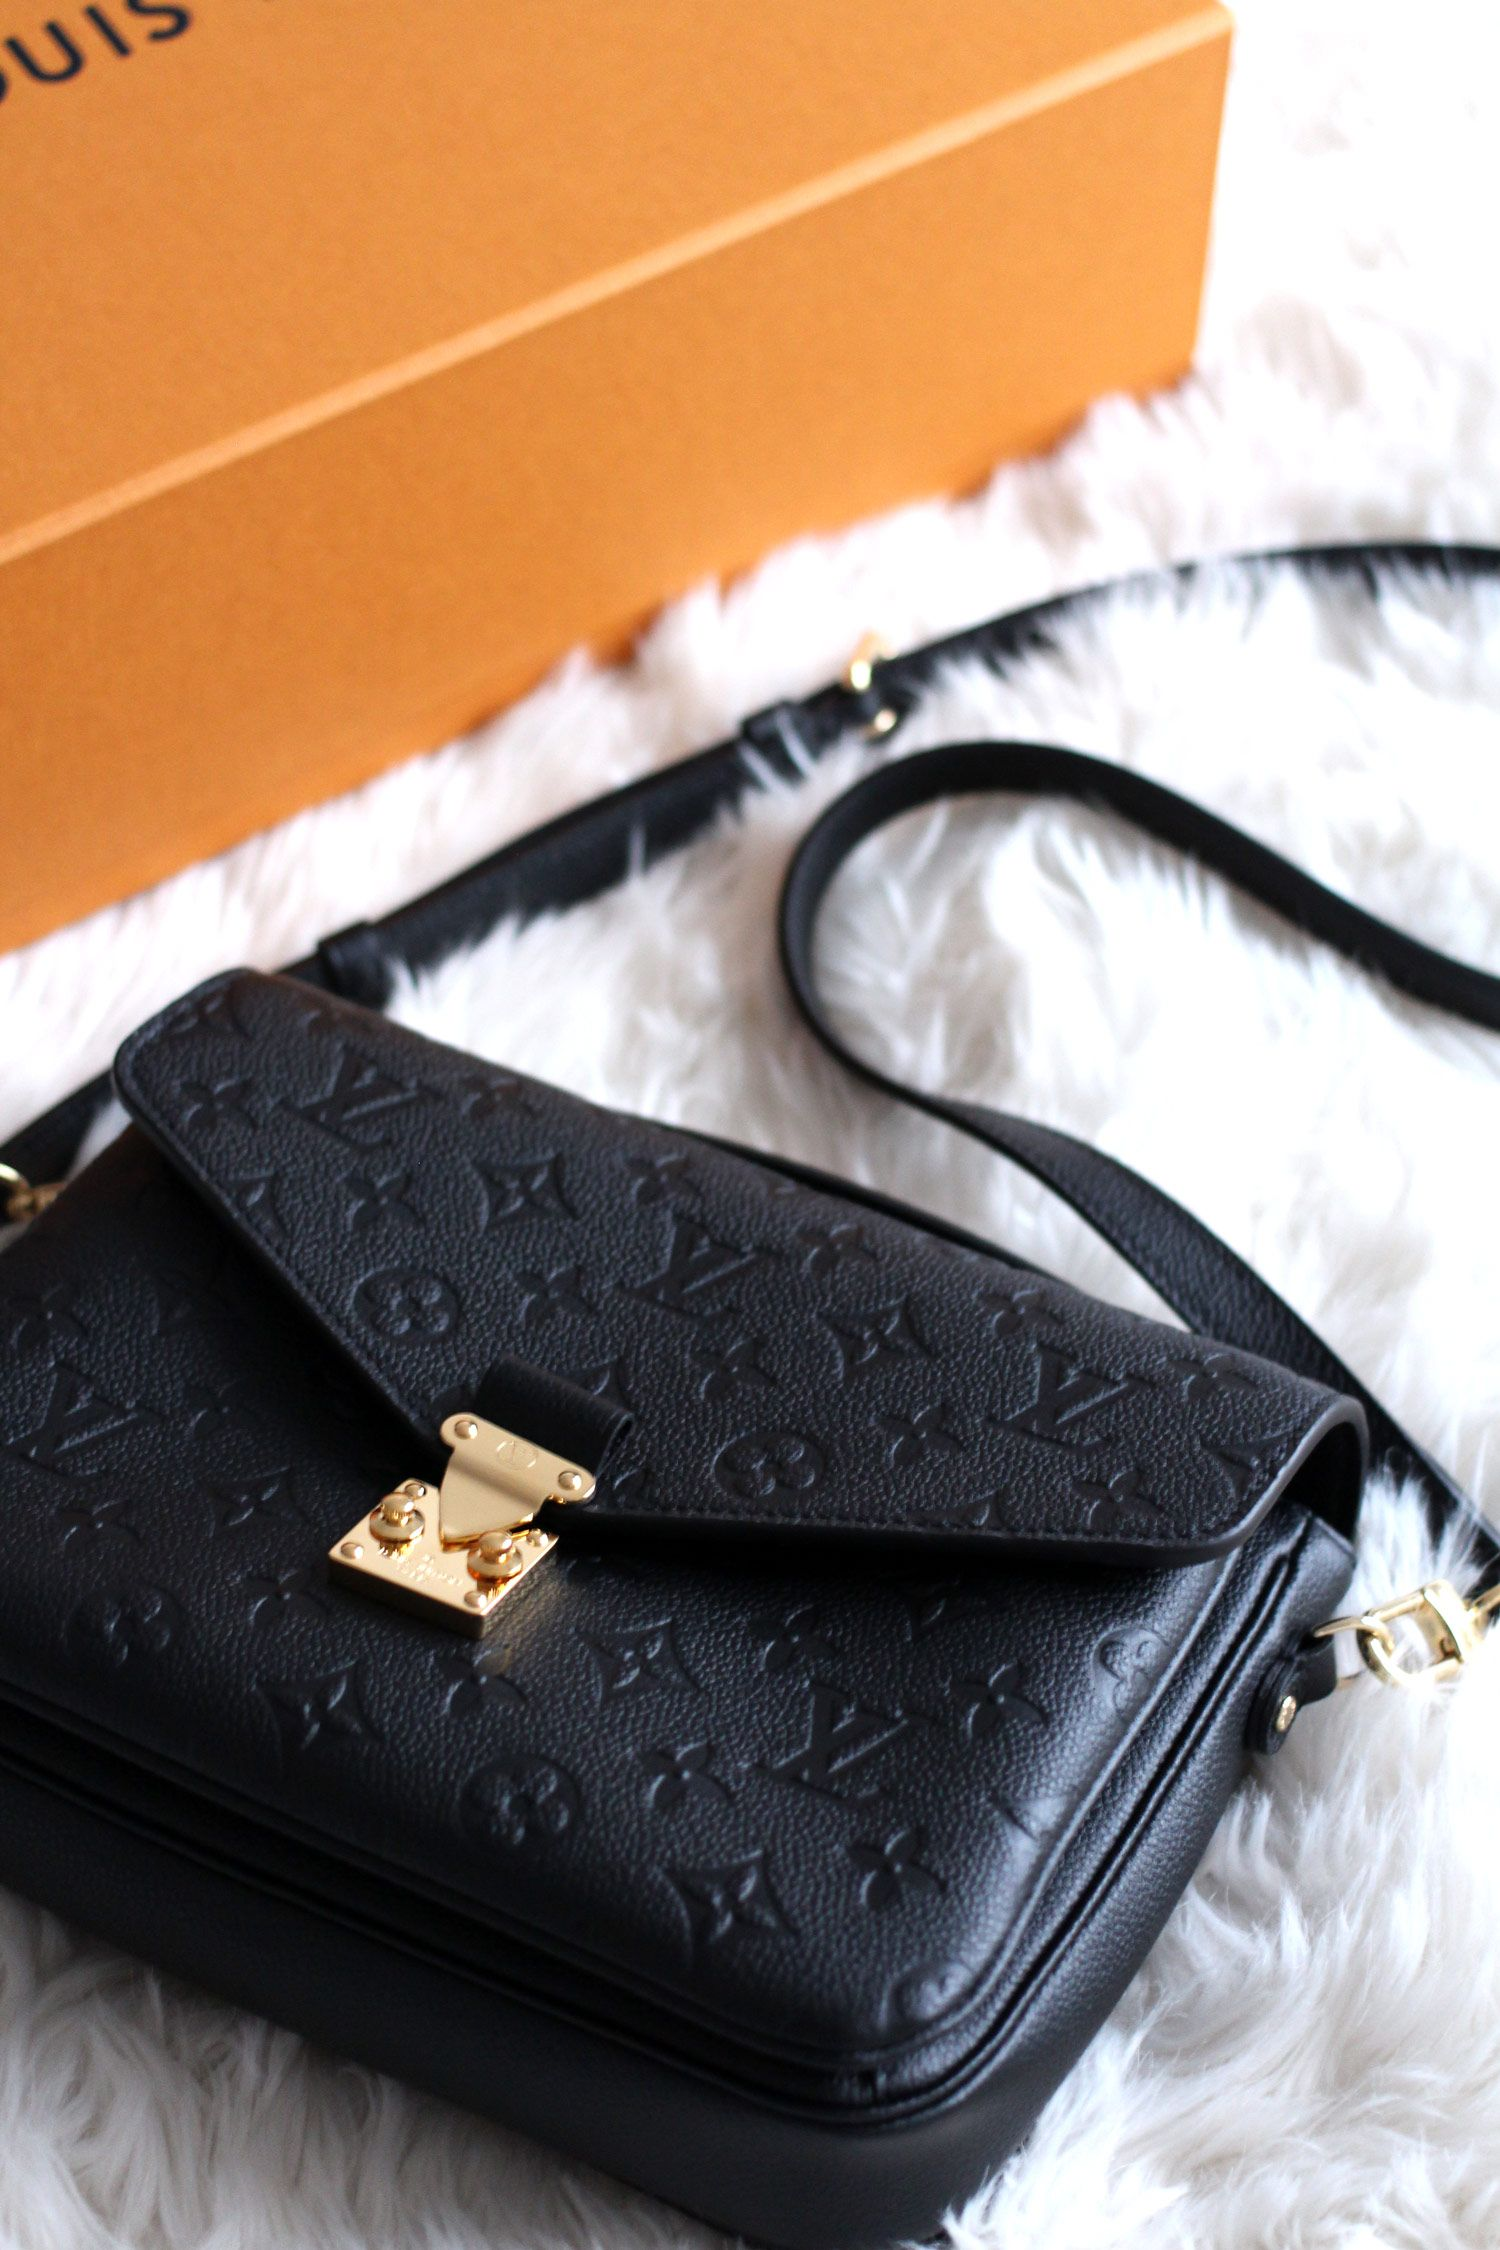 f925434f55d The Louis Vuitton Pochette Metis in black monogram empreinte leather with  gold hardware - review and